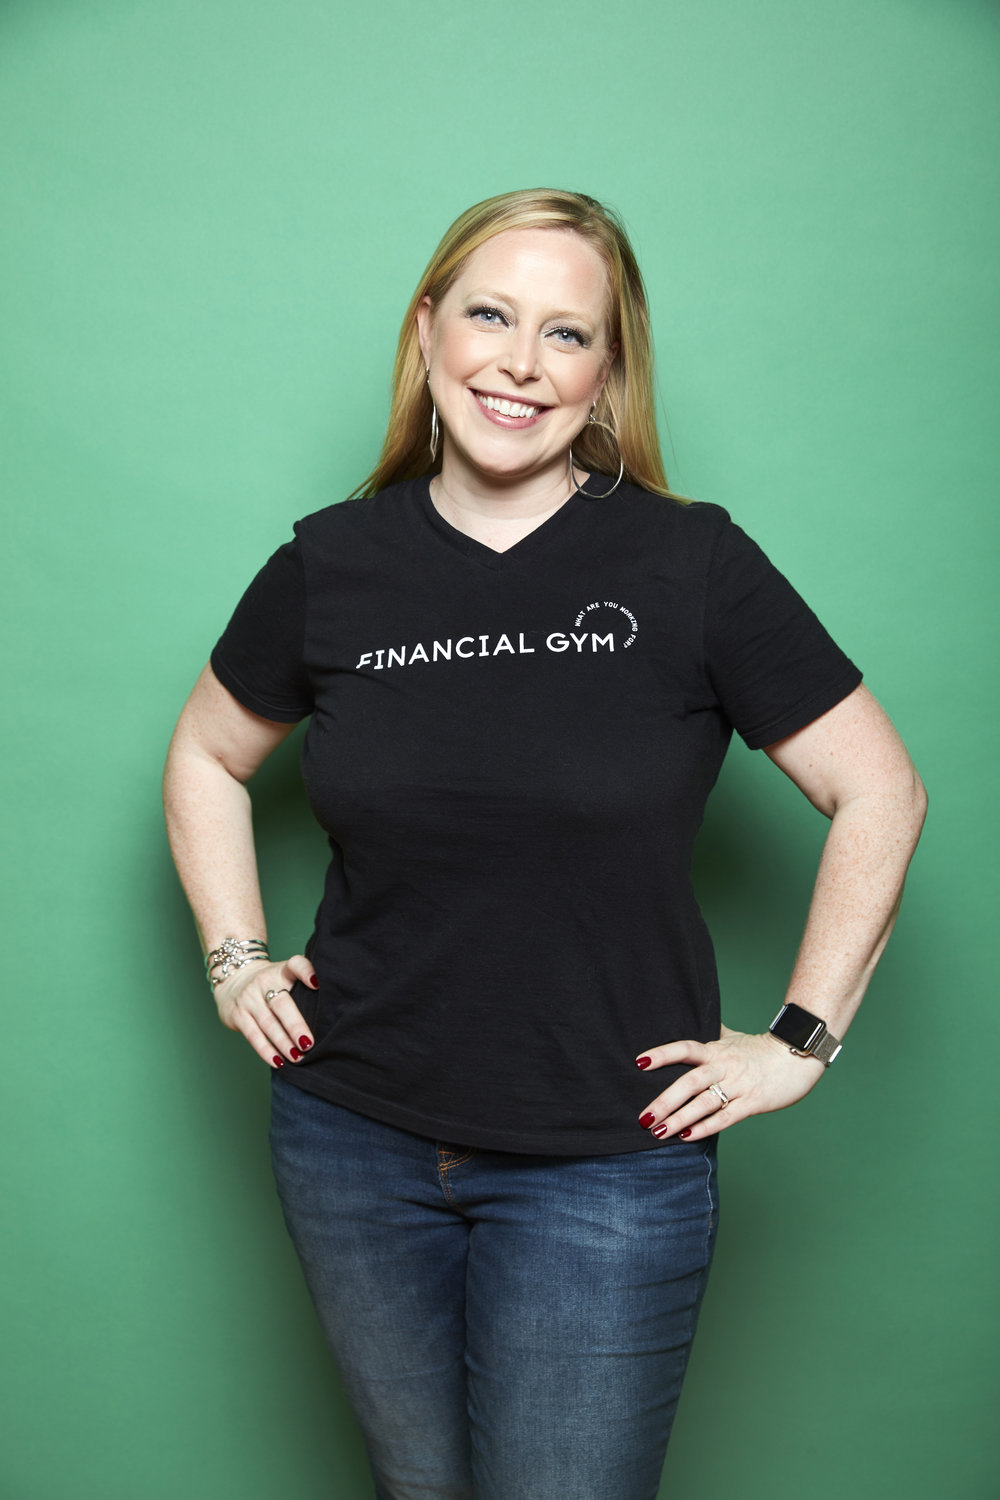 shannon-mclay-ceo-founder-financial-gym.jpg